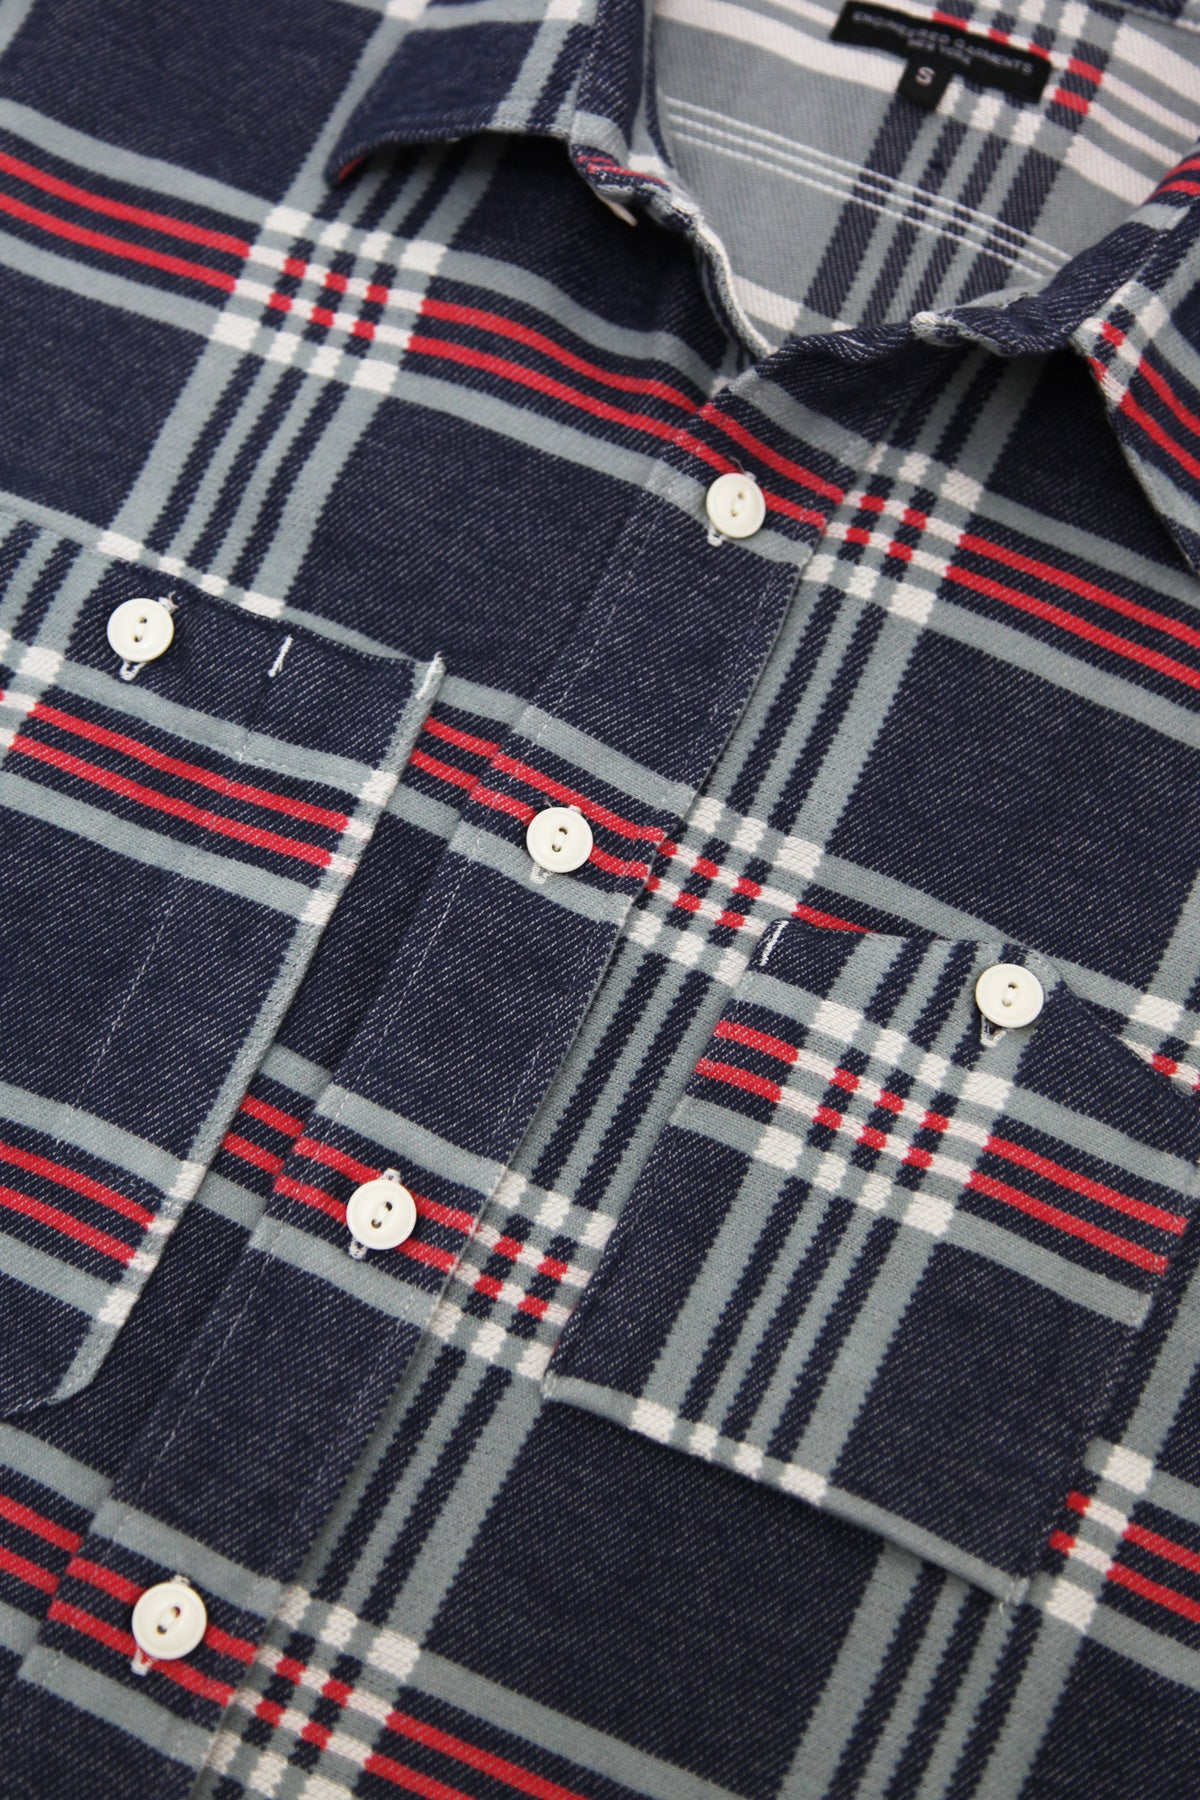 Engineered Garments - Work Shirt - Navy/Teal/Red Big Plaid - Canoe Club